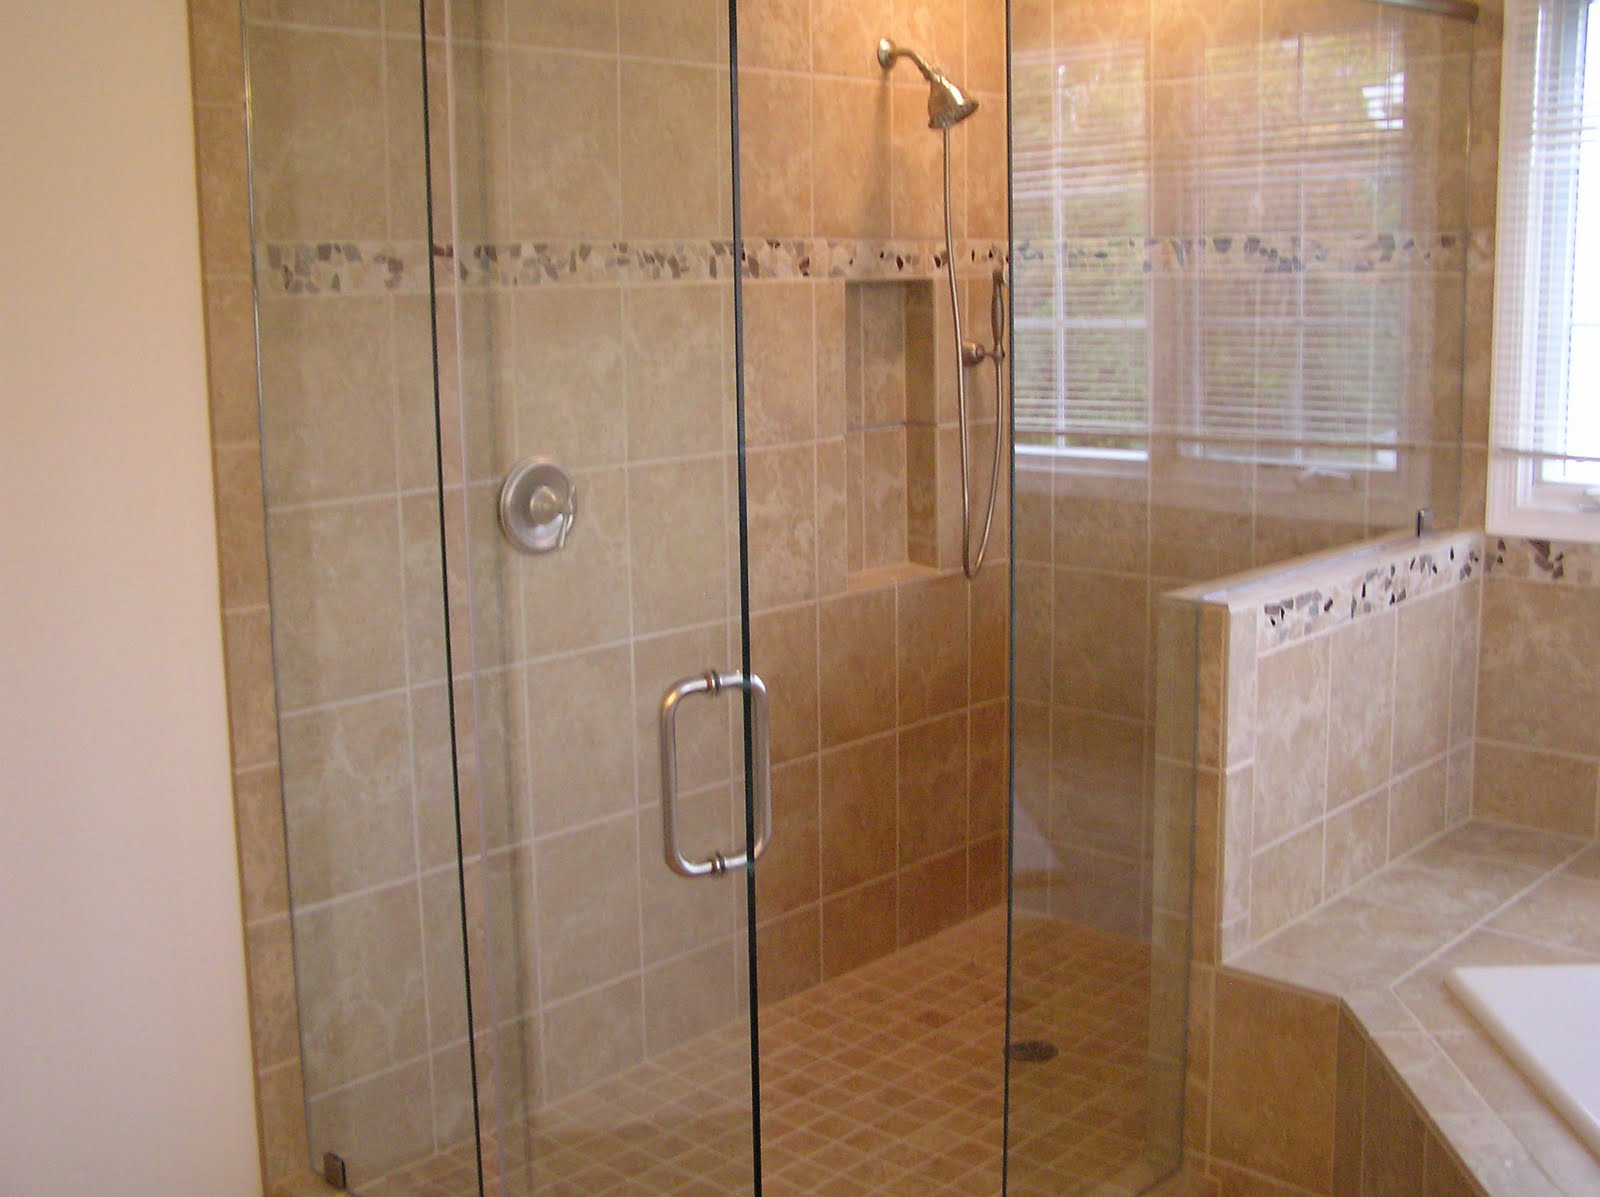 Tile bathroom shower design gallery luxury small bathroom interior design ideas inkiso one stop